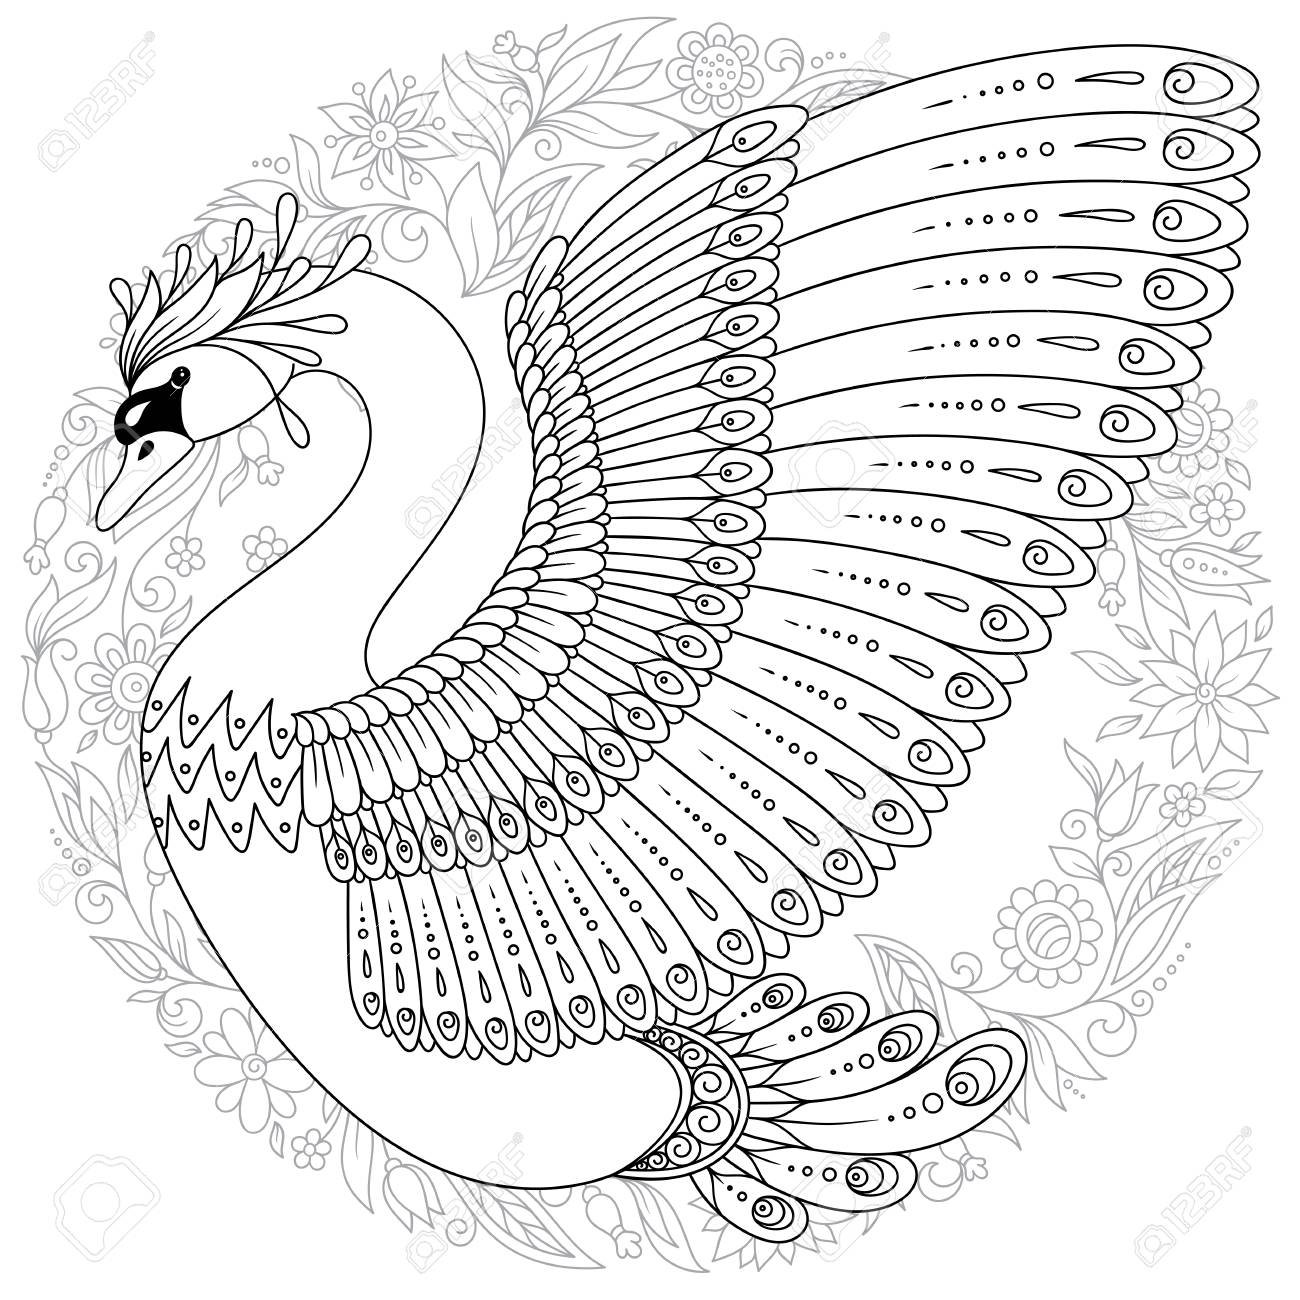 700 Top Colouring Pages Of Bird , Free HD Download